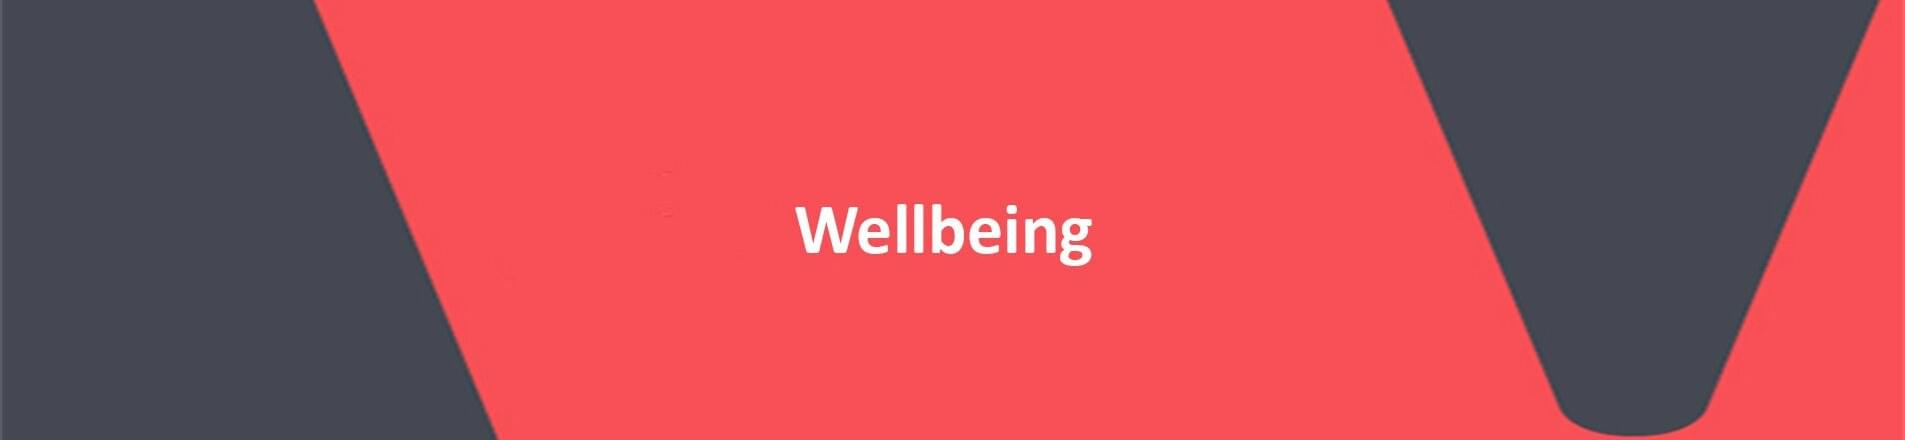 Wellbeing.